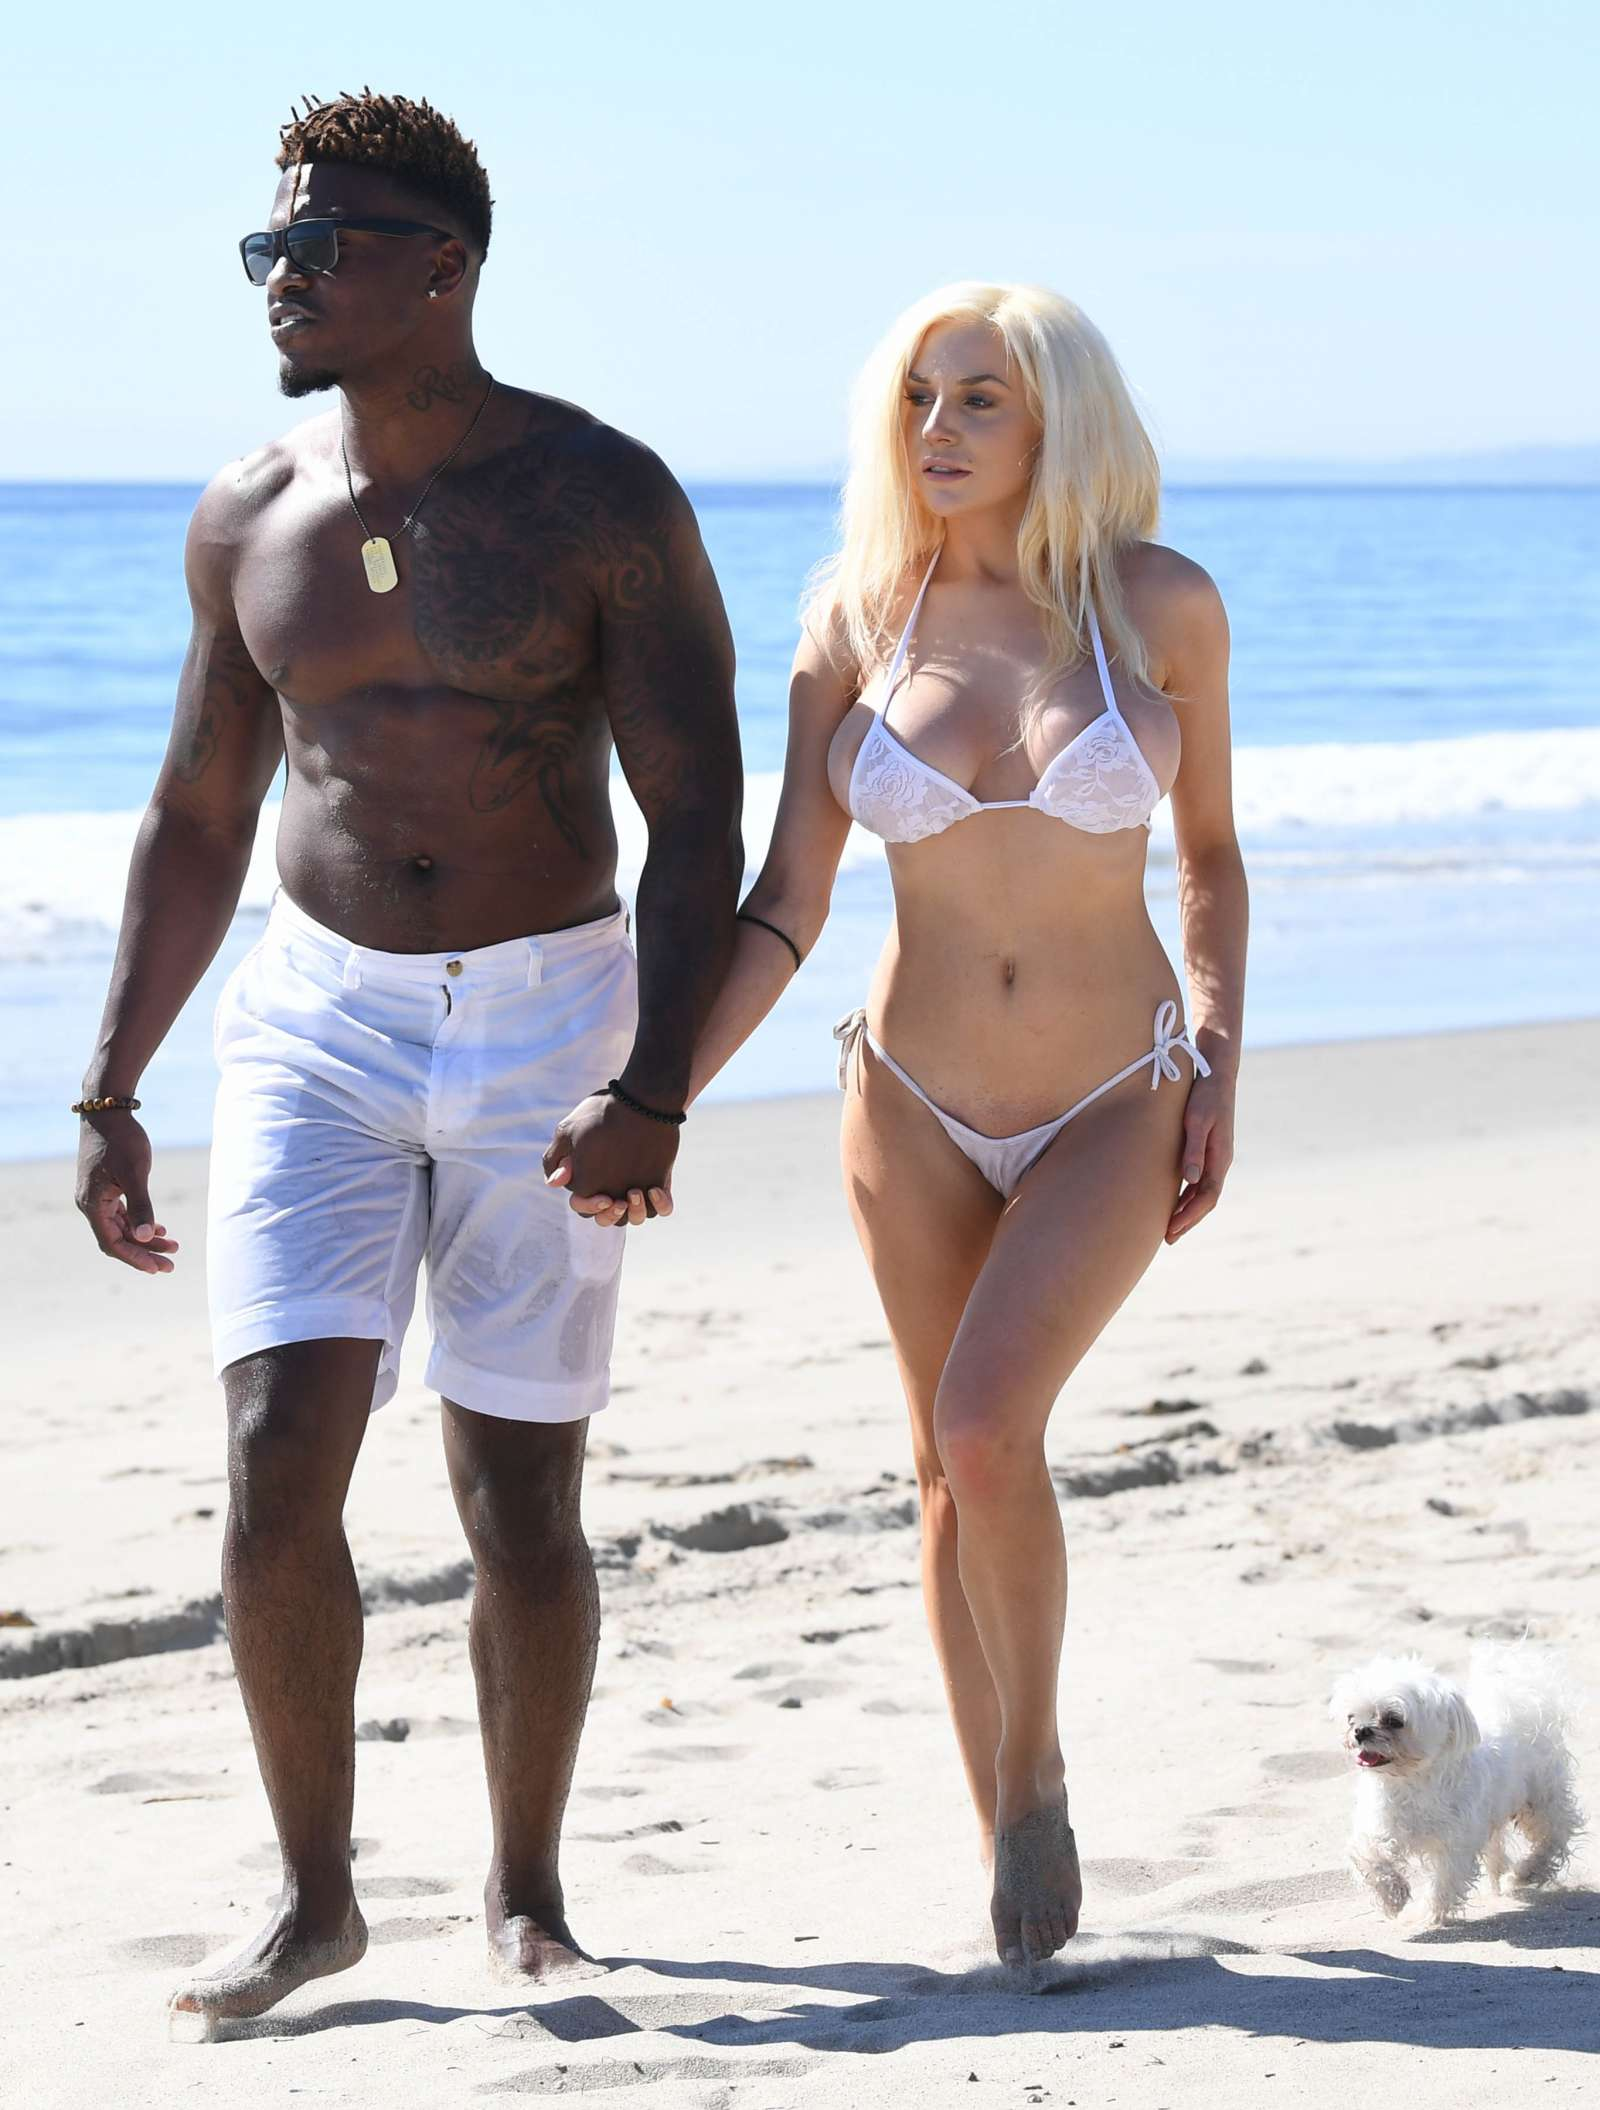 Courtney Stodden in Bikini on the beach in Malibu Pic 9 of 35